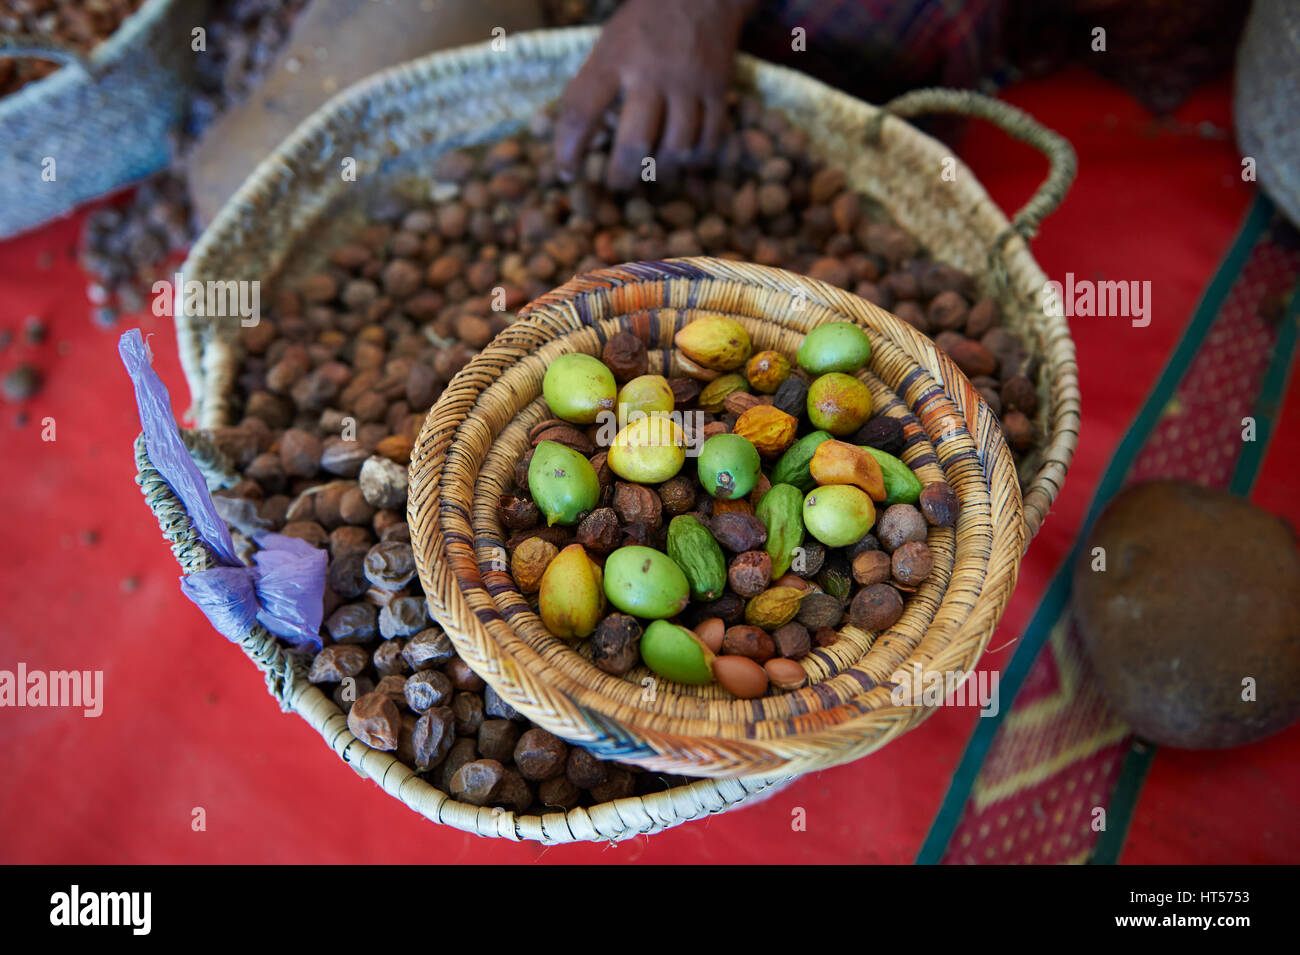 Argan nuts in baskets at the Cooperative Marjana, Ounara, Essouira, Morocco - Stock Image